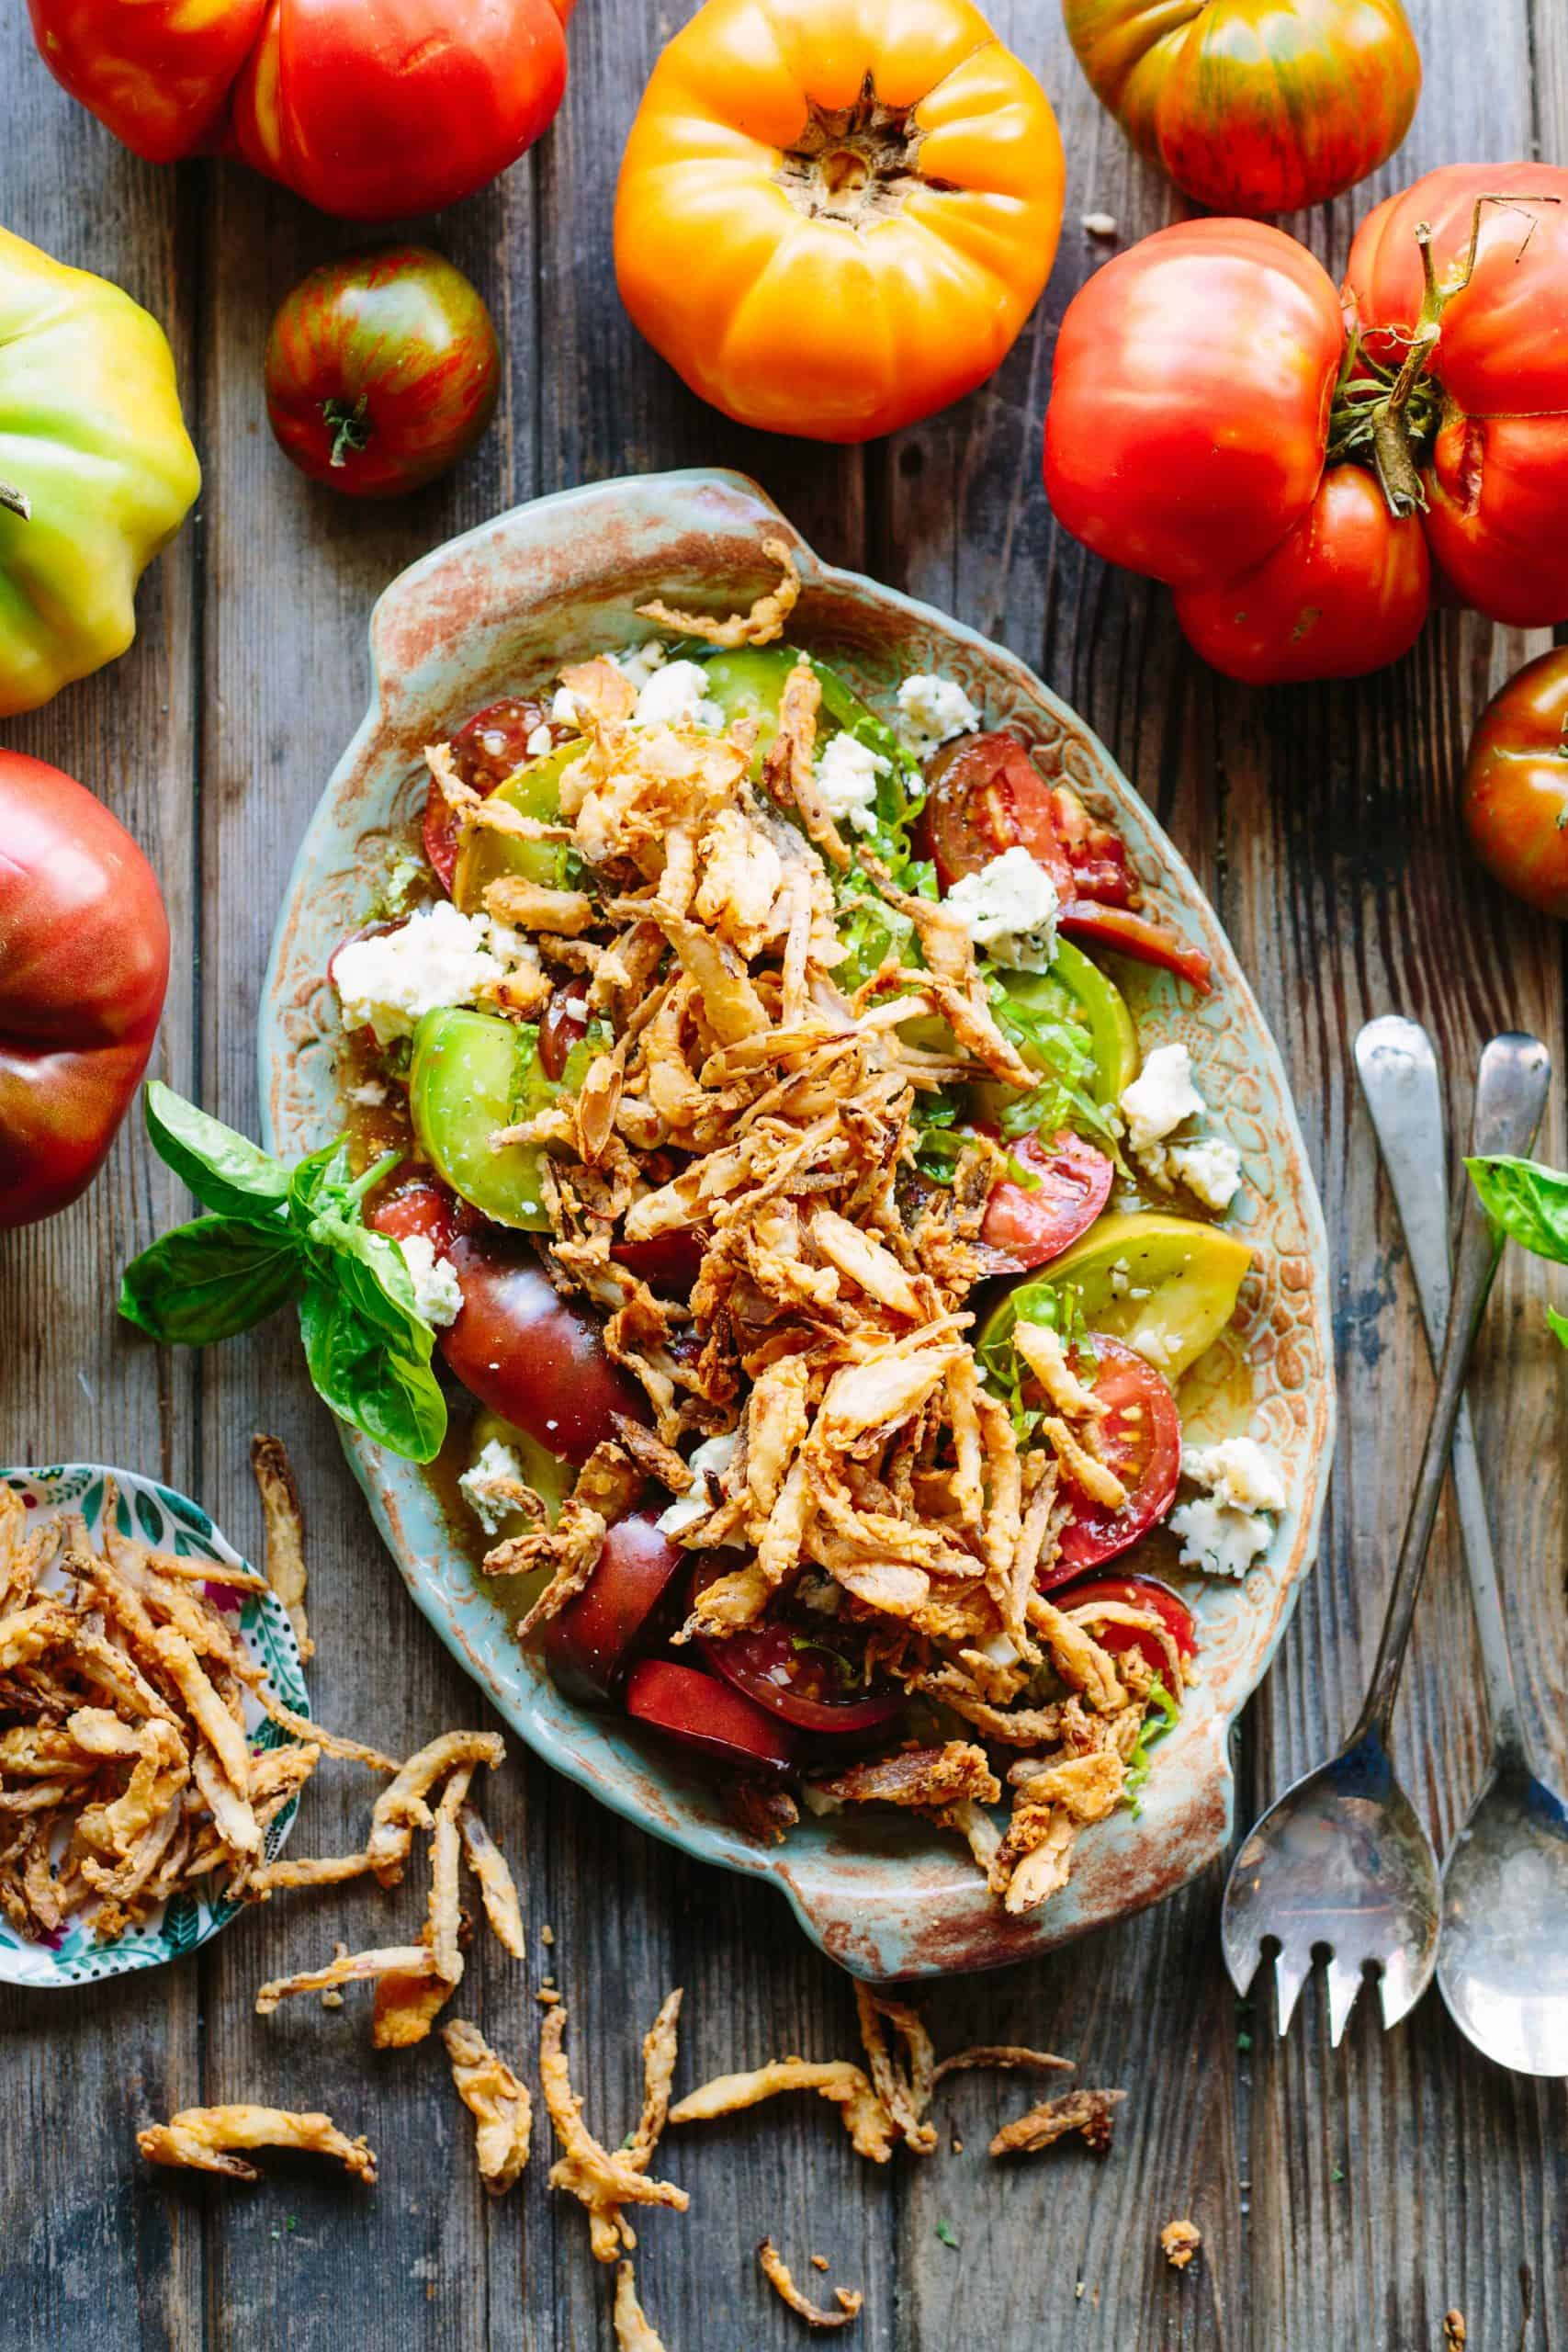 Heirloom Tomato Salad with Blue Cheese and Fried Shallots